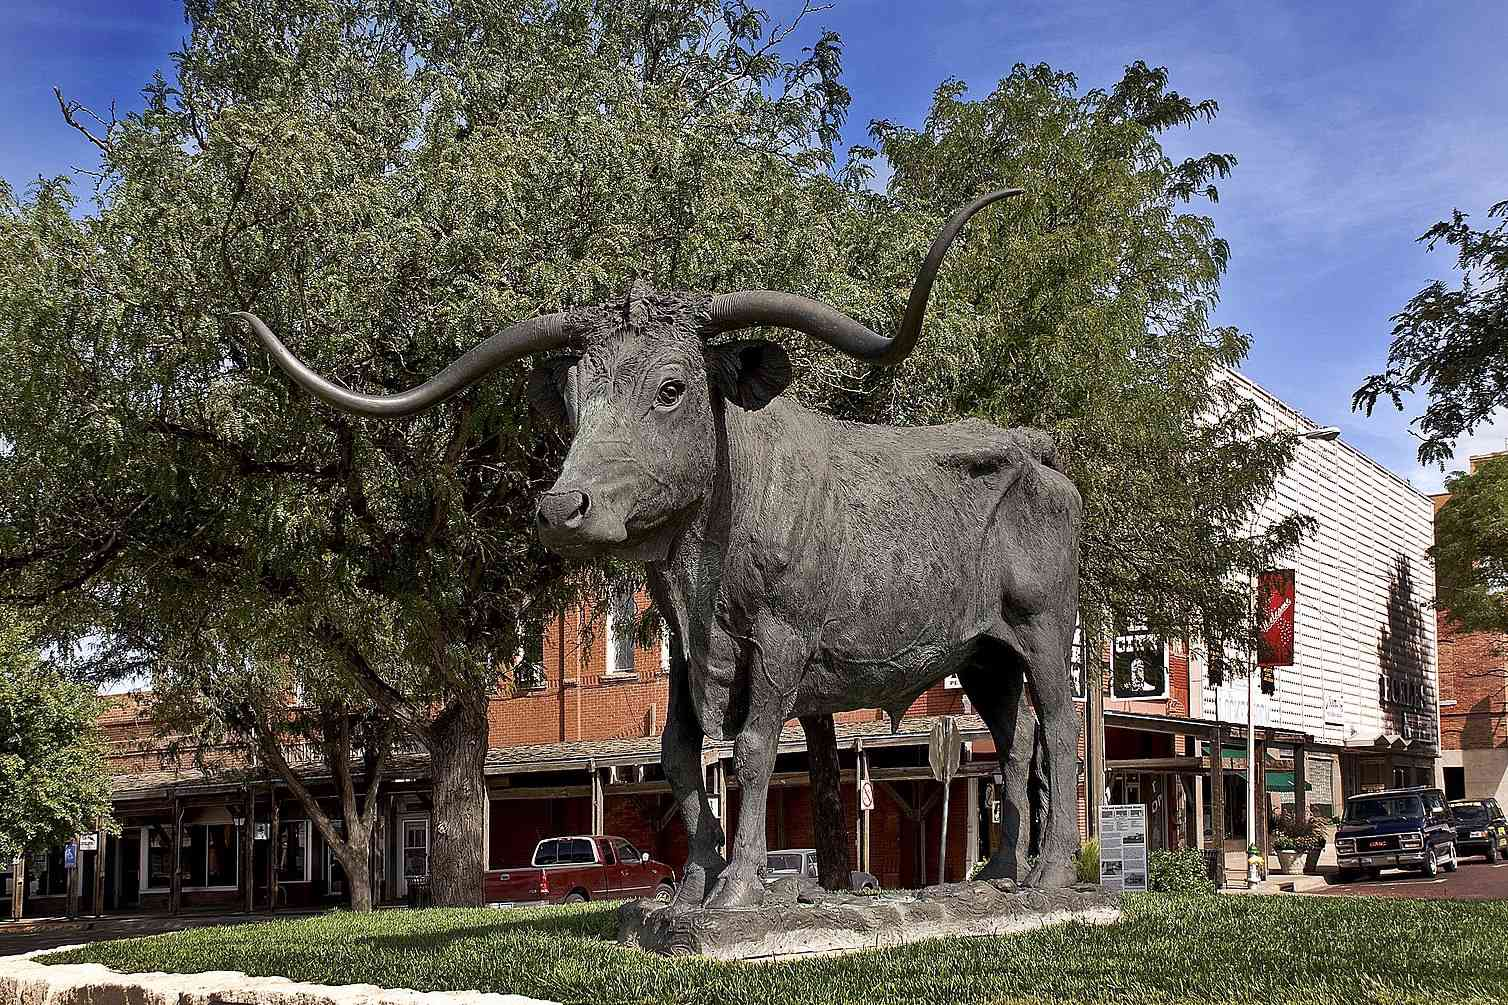 Giant Texas longhorn statue on Main Street in Dodge City